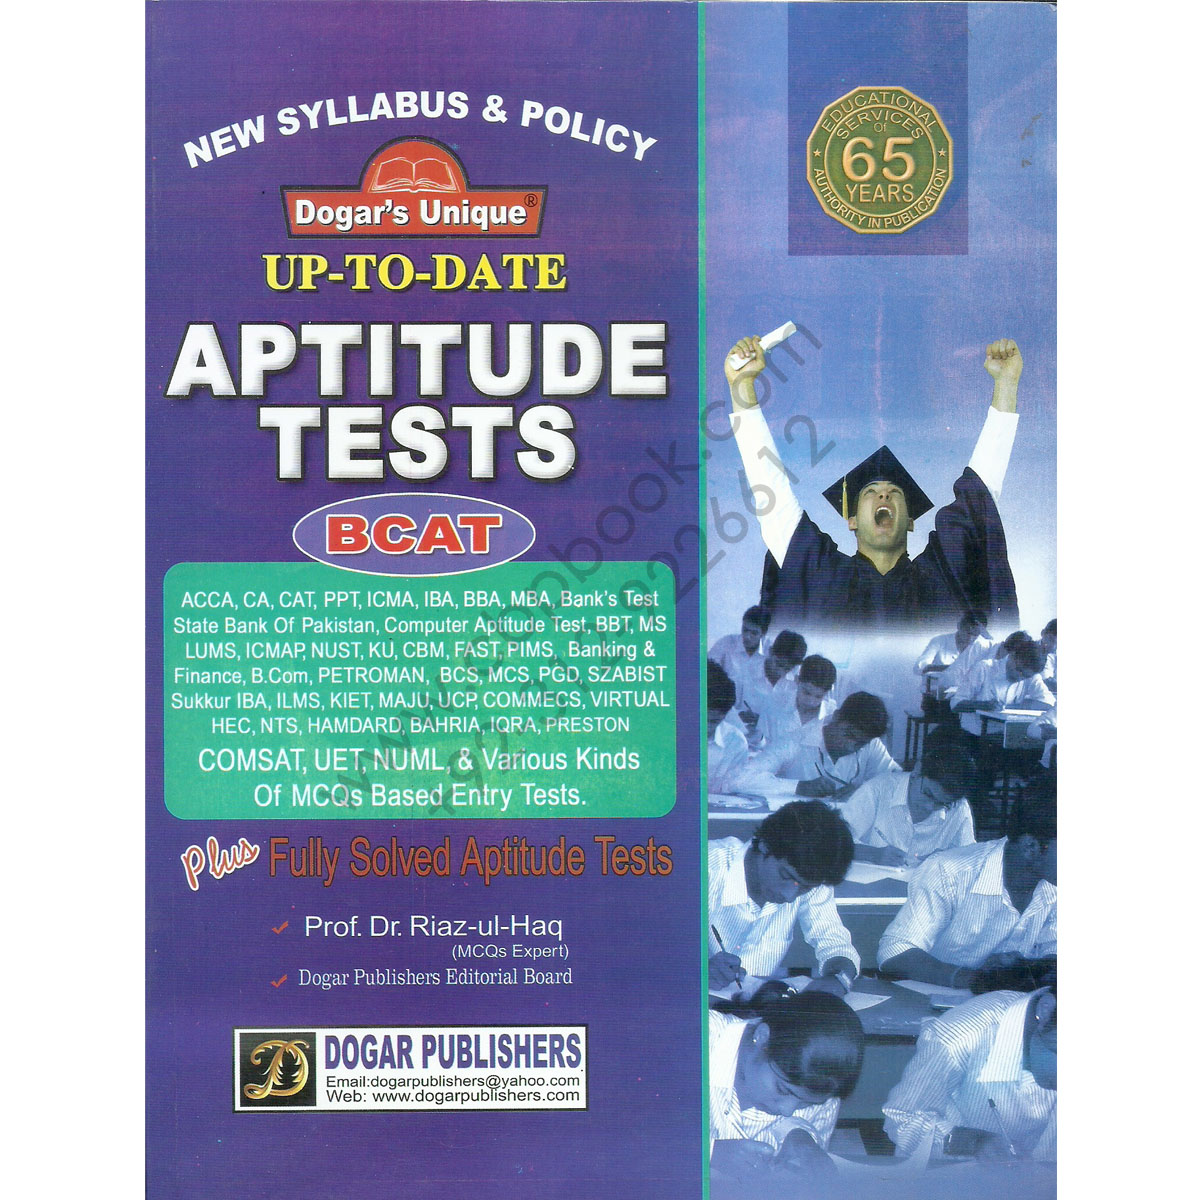 aptitude test by ch ahmed najib caravan book house cbpbook dogar s unique aptitude tests bcat by prof dr riaz ul haq